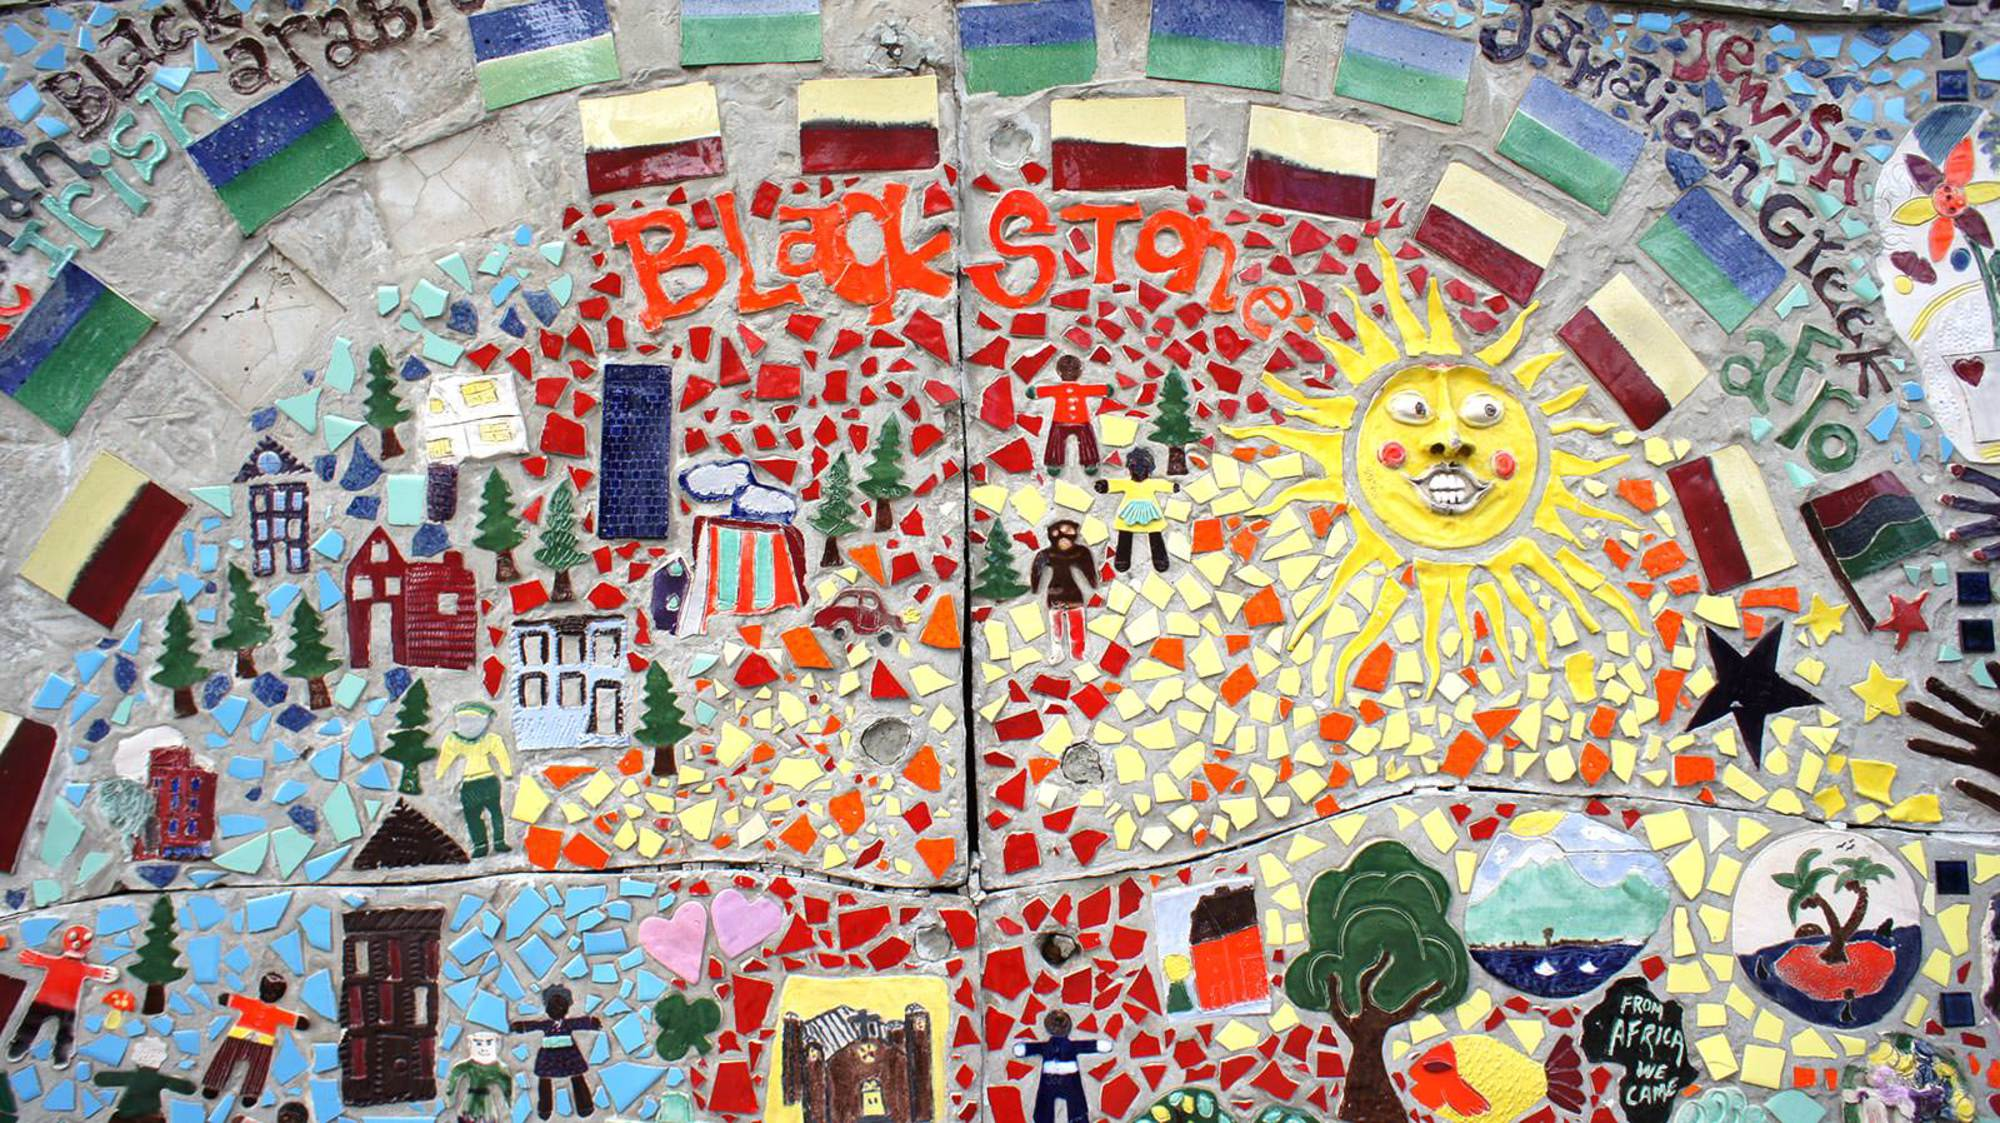 Mosaic by the entrance of the BCC